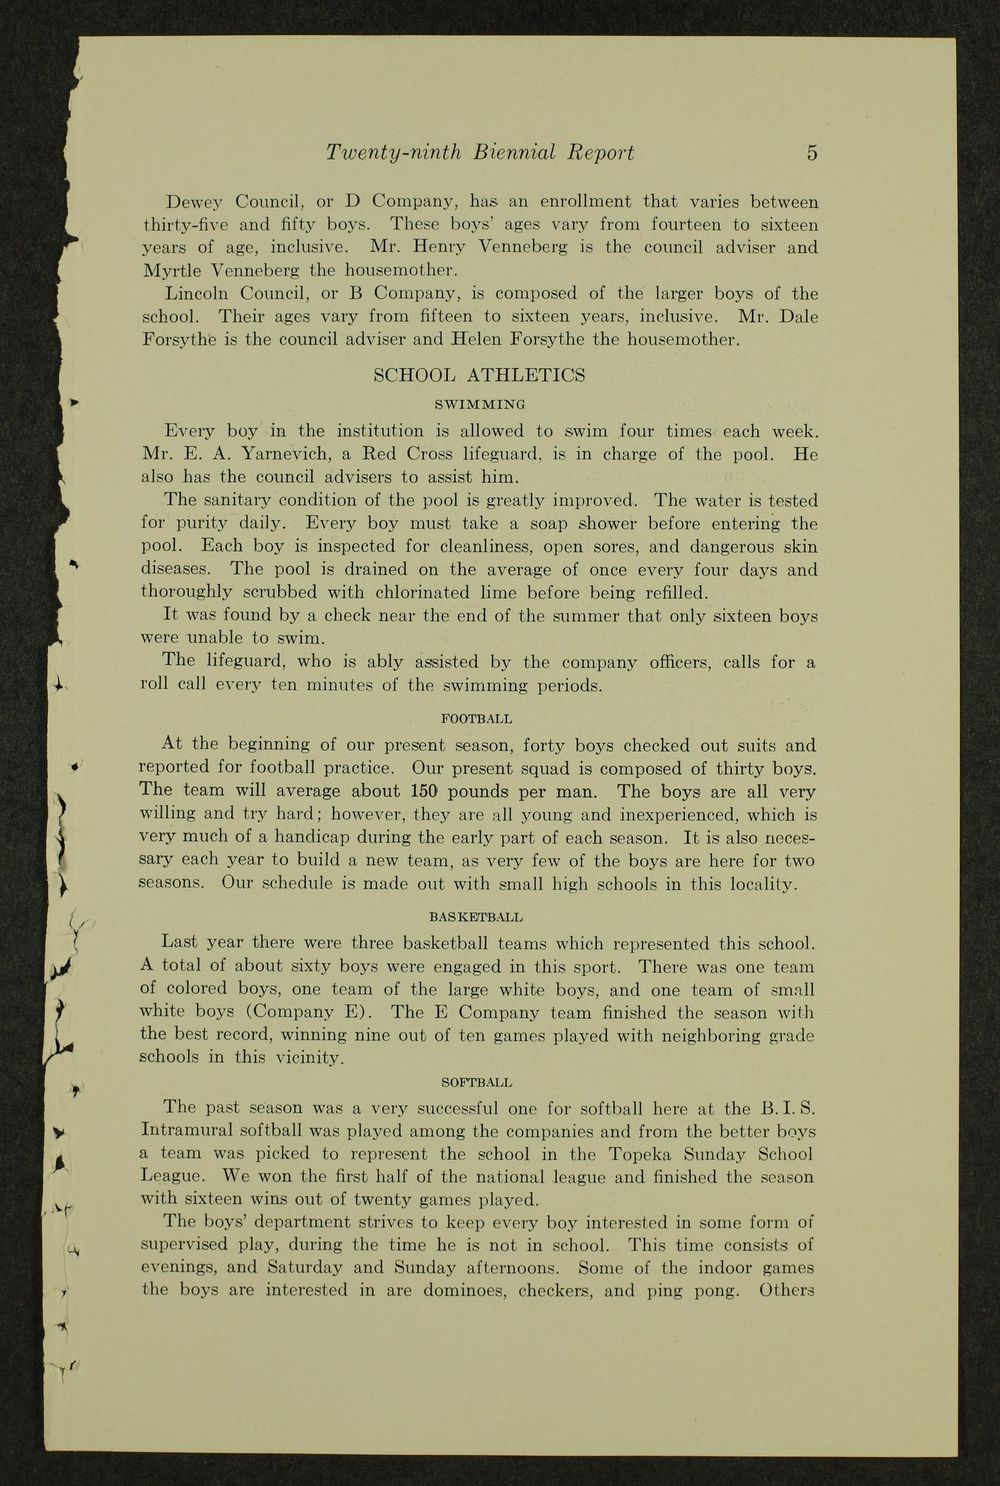 Biennial report of the Boys Industrial School, 1938 - 5